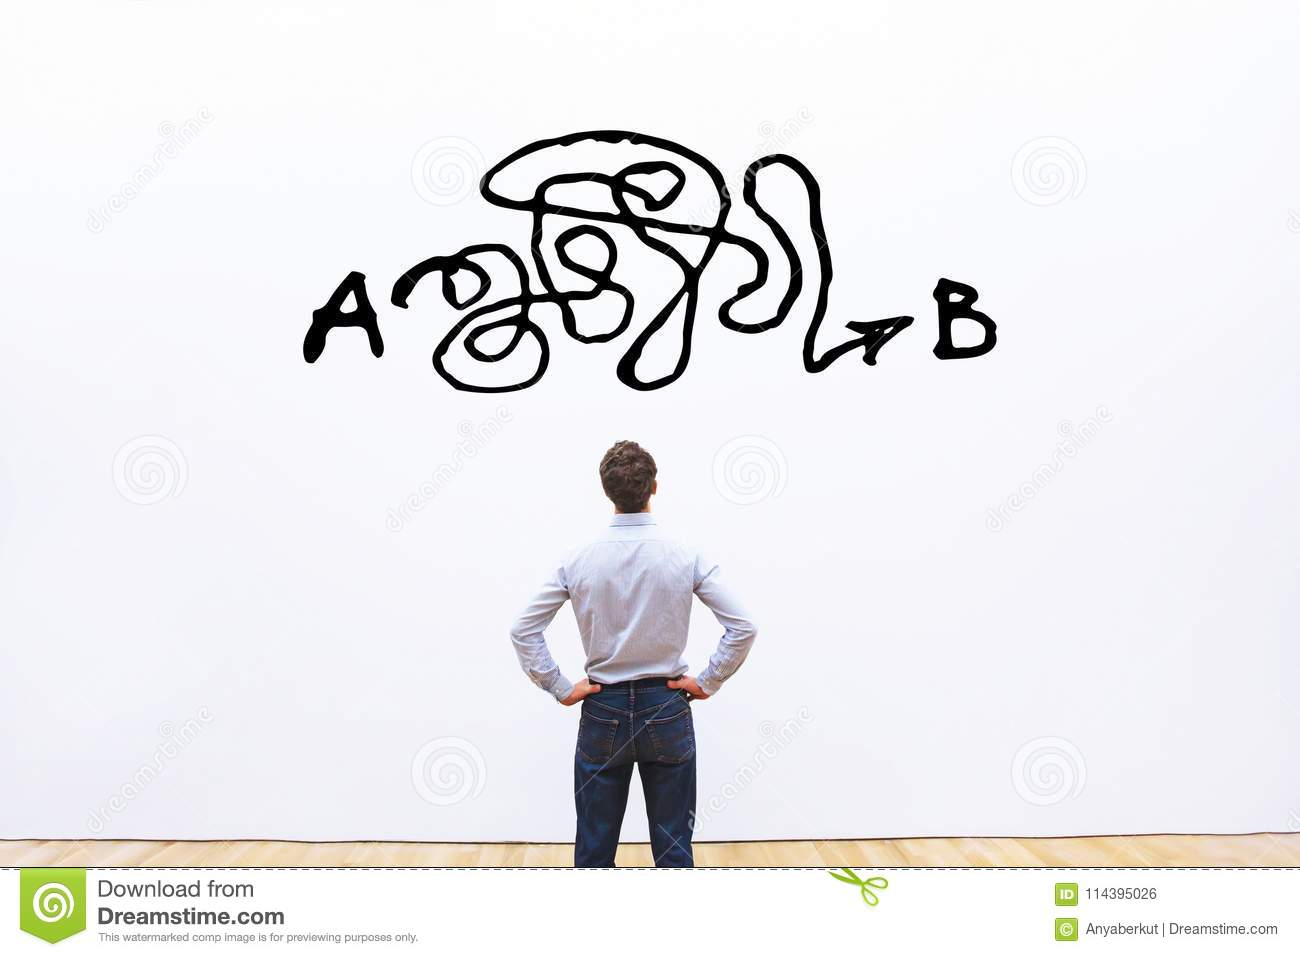 Problem solving, complicated solution from point A to point B, business idea or creativity concept